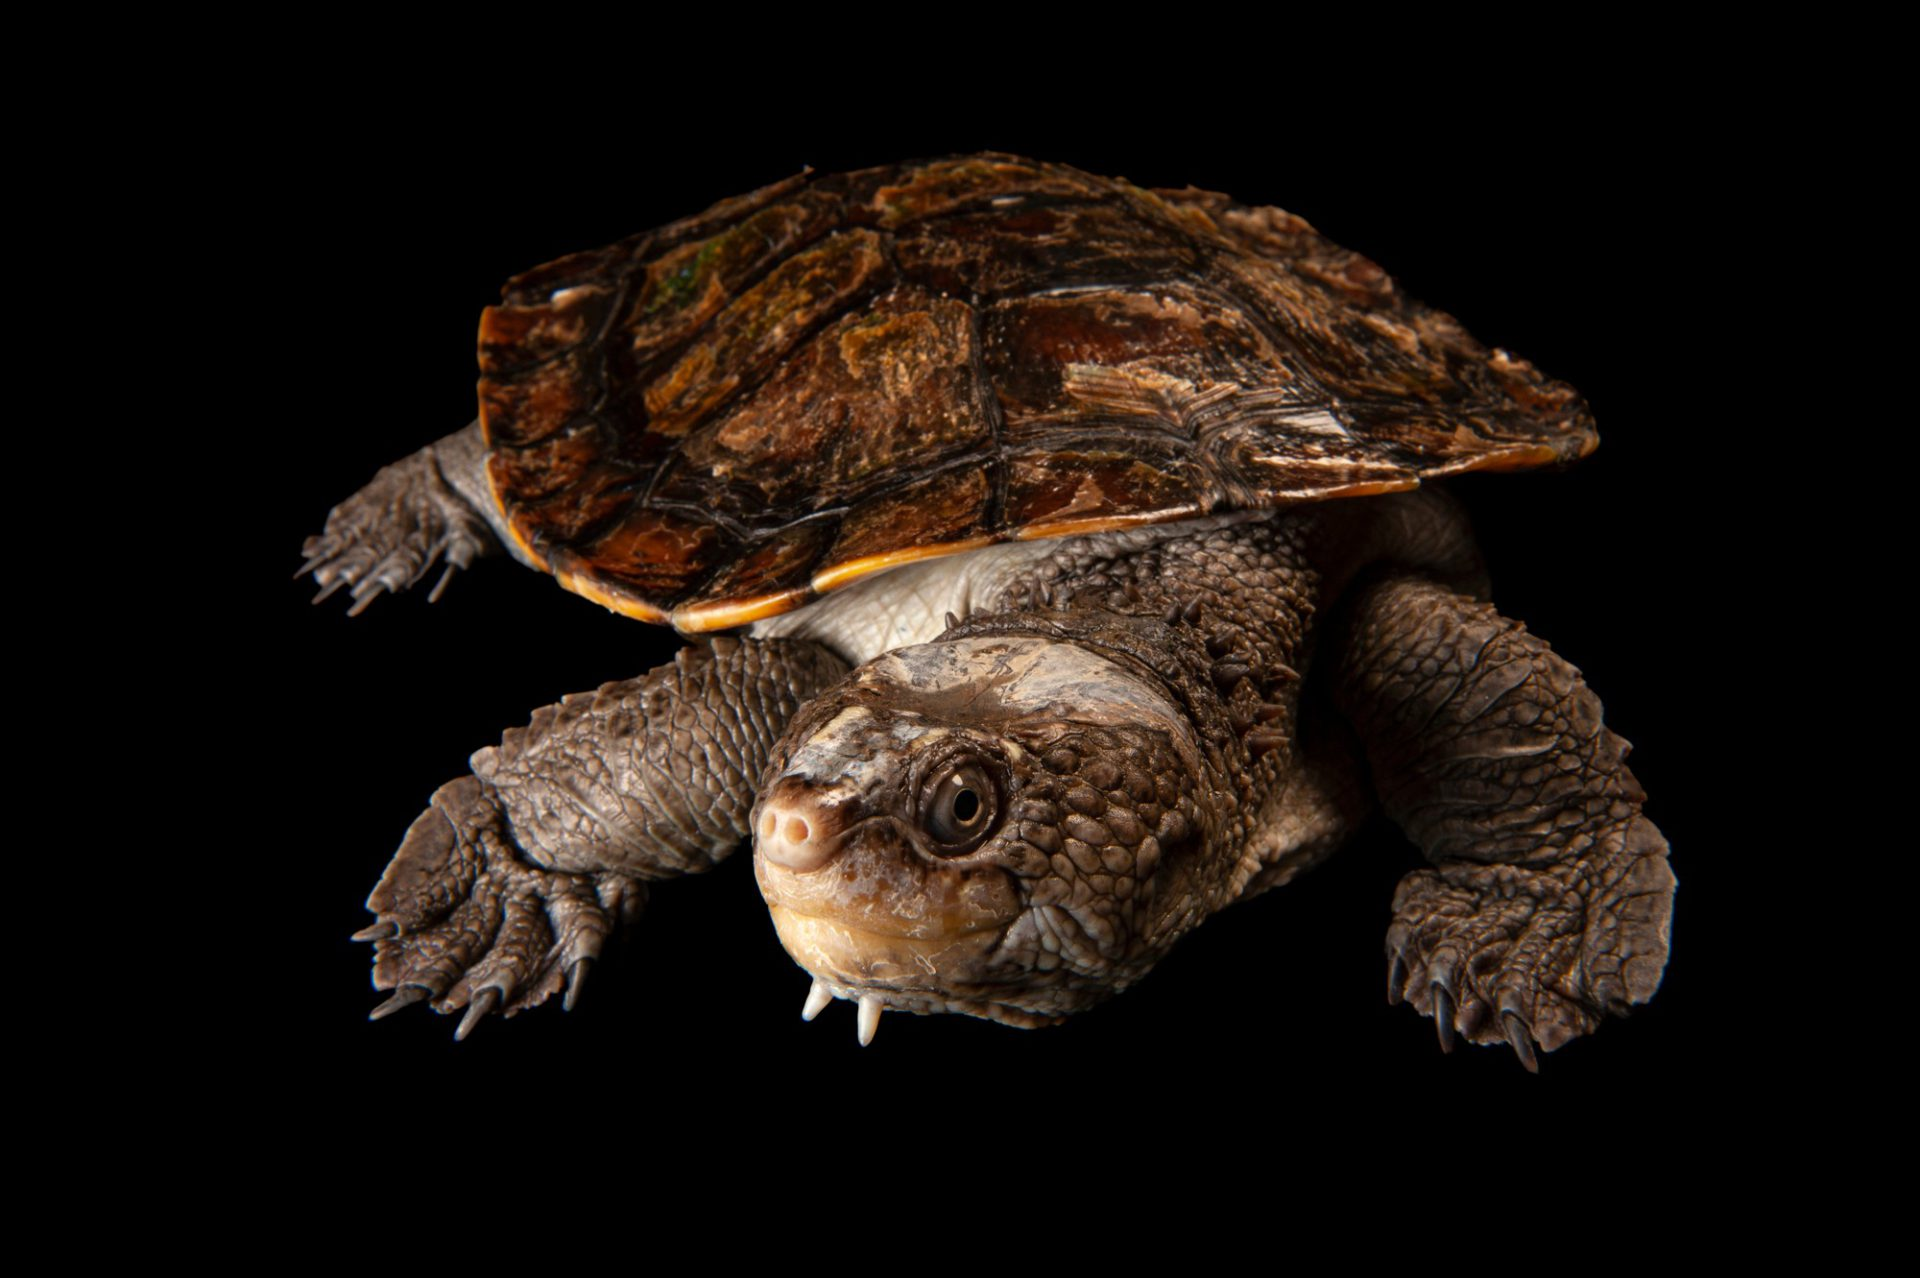 Photo: A serrated snapping turtle, Elseya latisternum, at the Sedgwick County Zoo.